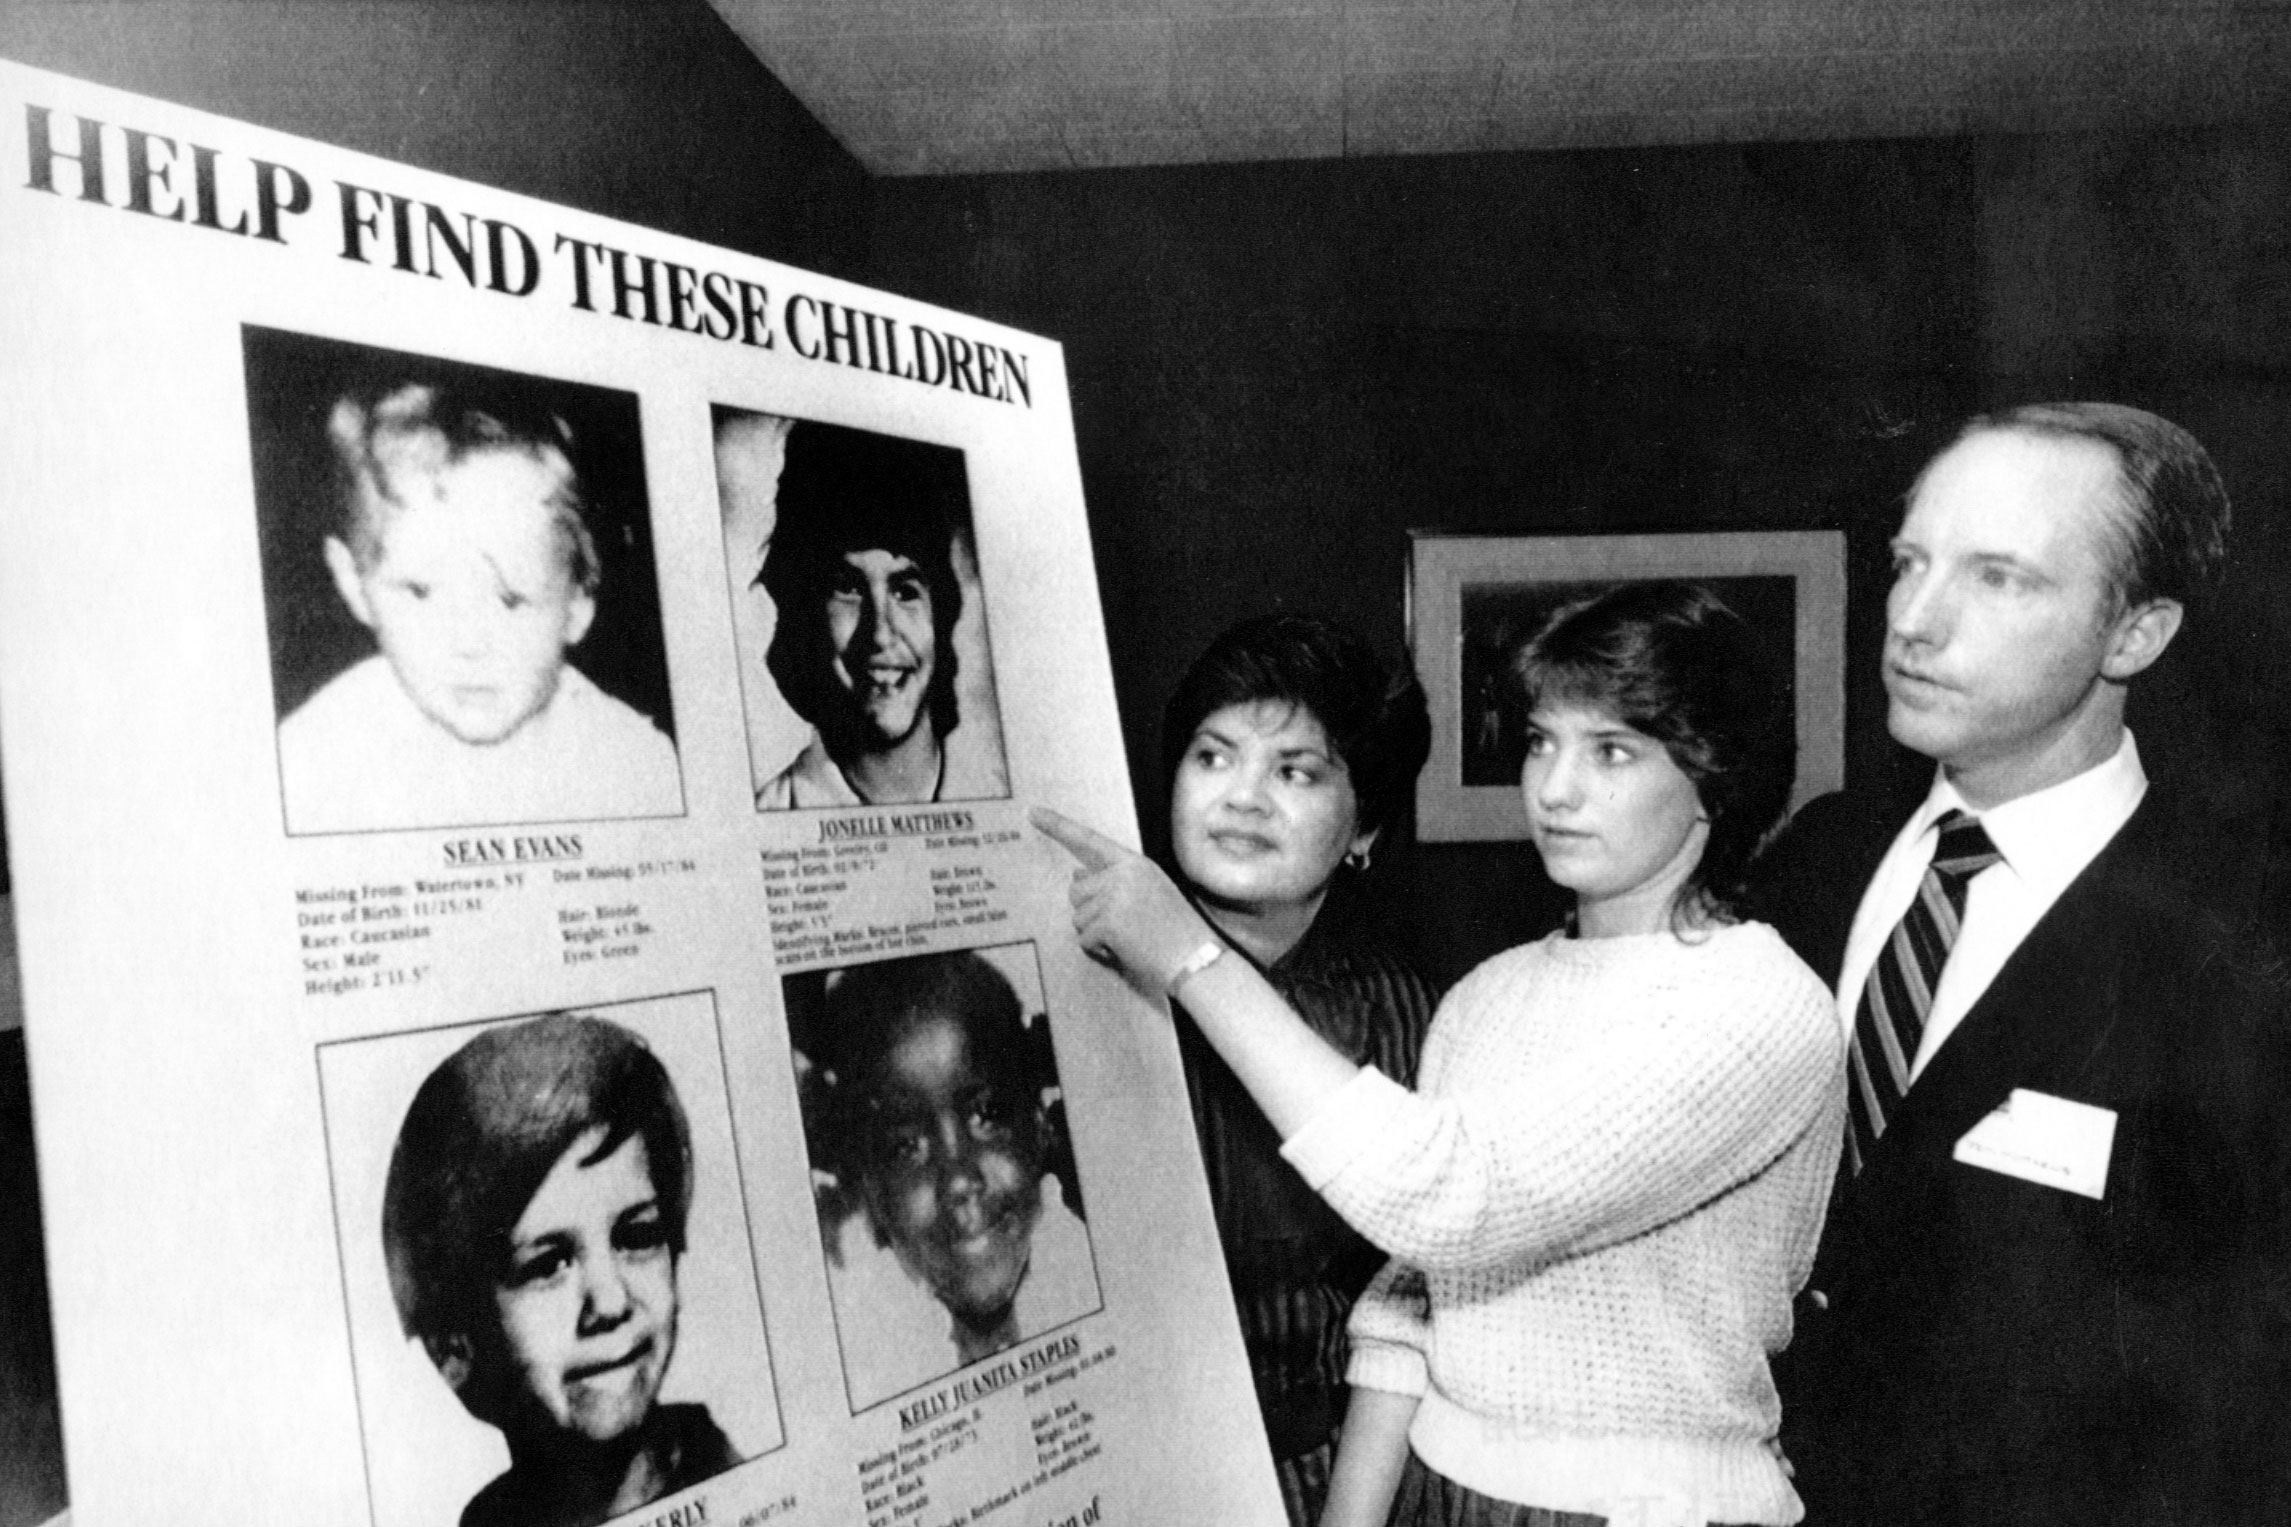 Jennifer Matthews, 16, points to a photo of her missing sister, Jonelle, 13, as parents Gloria and Jim Matthews, of Boulder, Colo., look on Friday April 19, 1985, in New York. Playhouse Video announced a poster program as part of a campaign to help locate missing children that it hopes will involve 24,000 nationwide video retail outlets and be seen by 144 million customers.